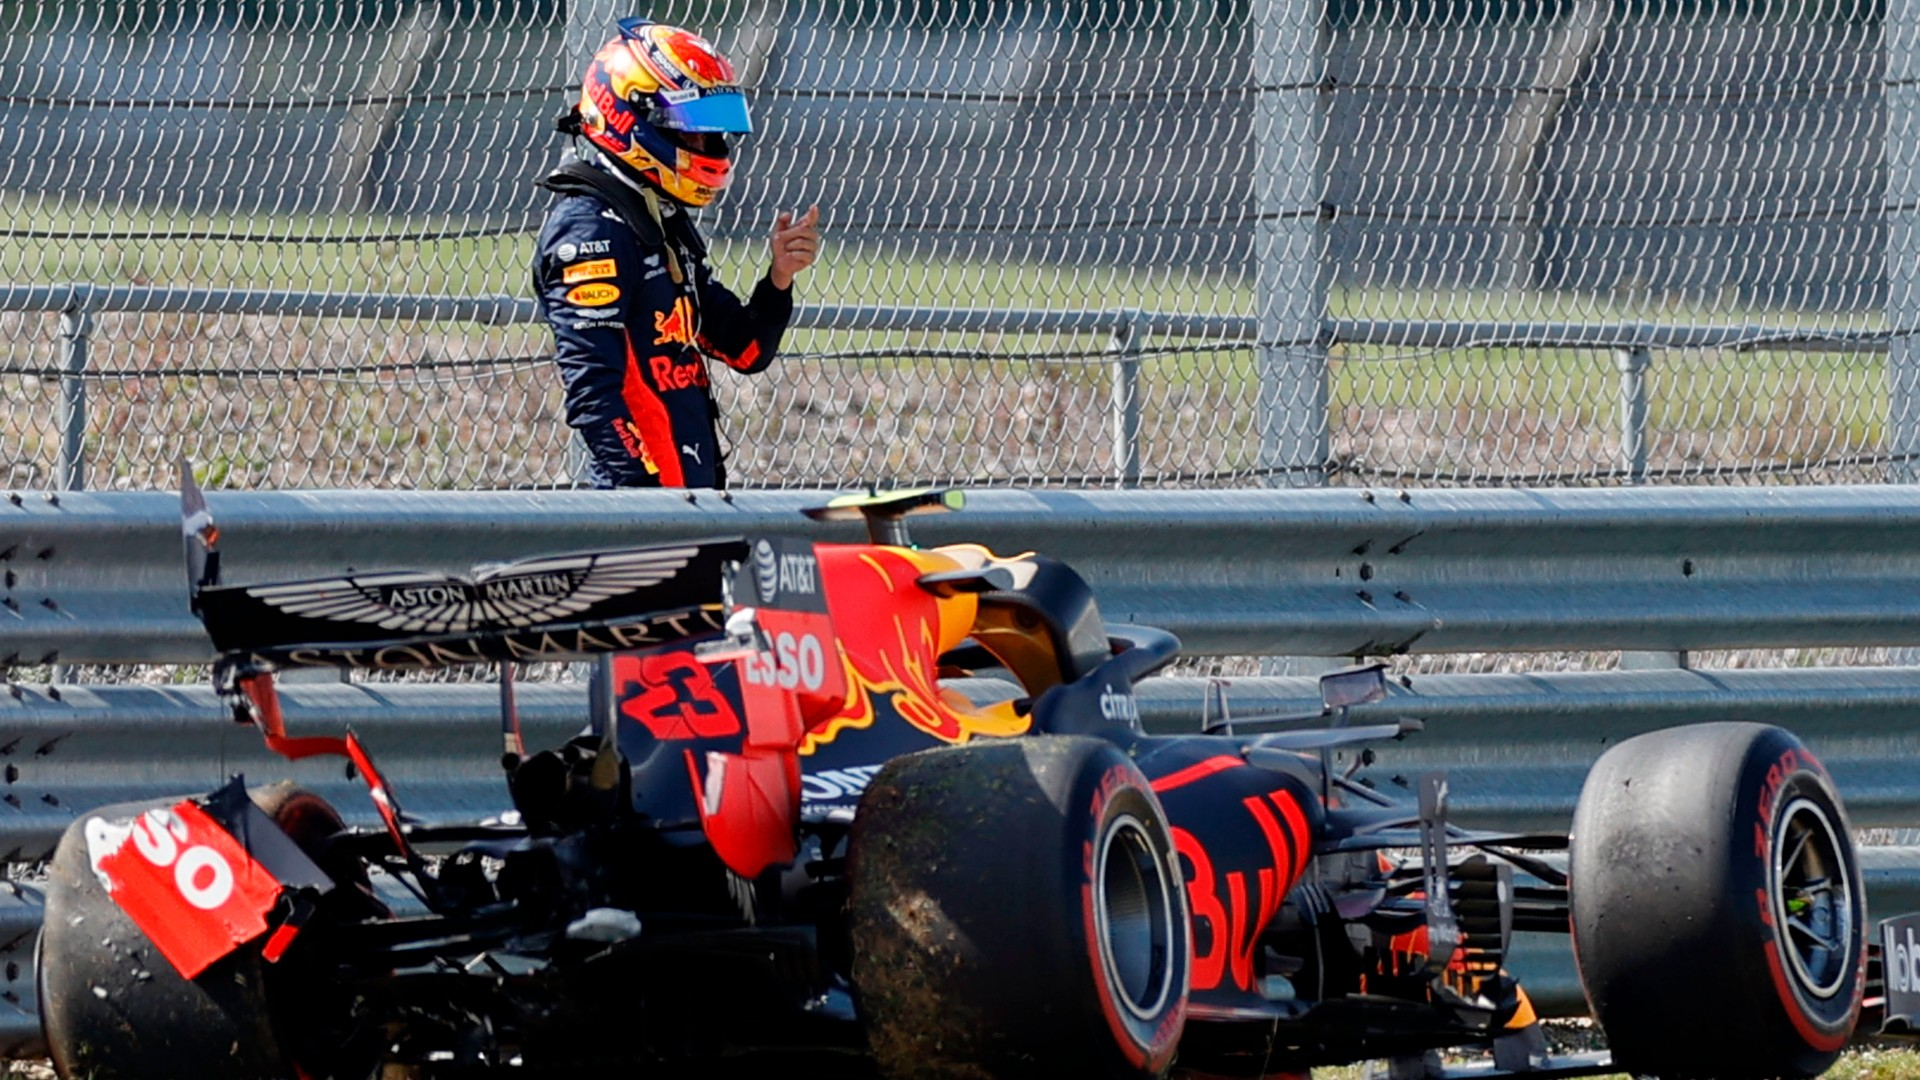 Red Bull boss Christian Horner says the team will have to be wary of the budget cap after a costly British Grand Prix crash.